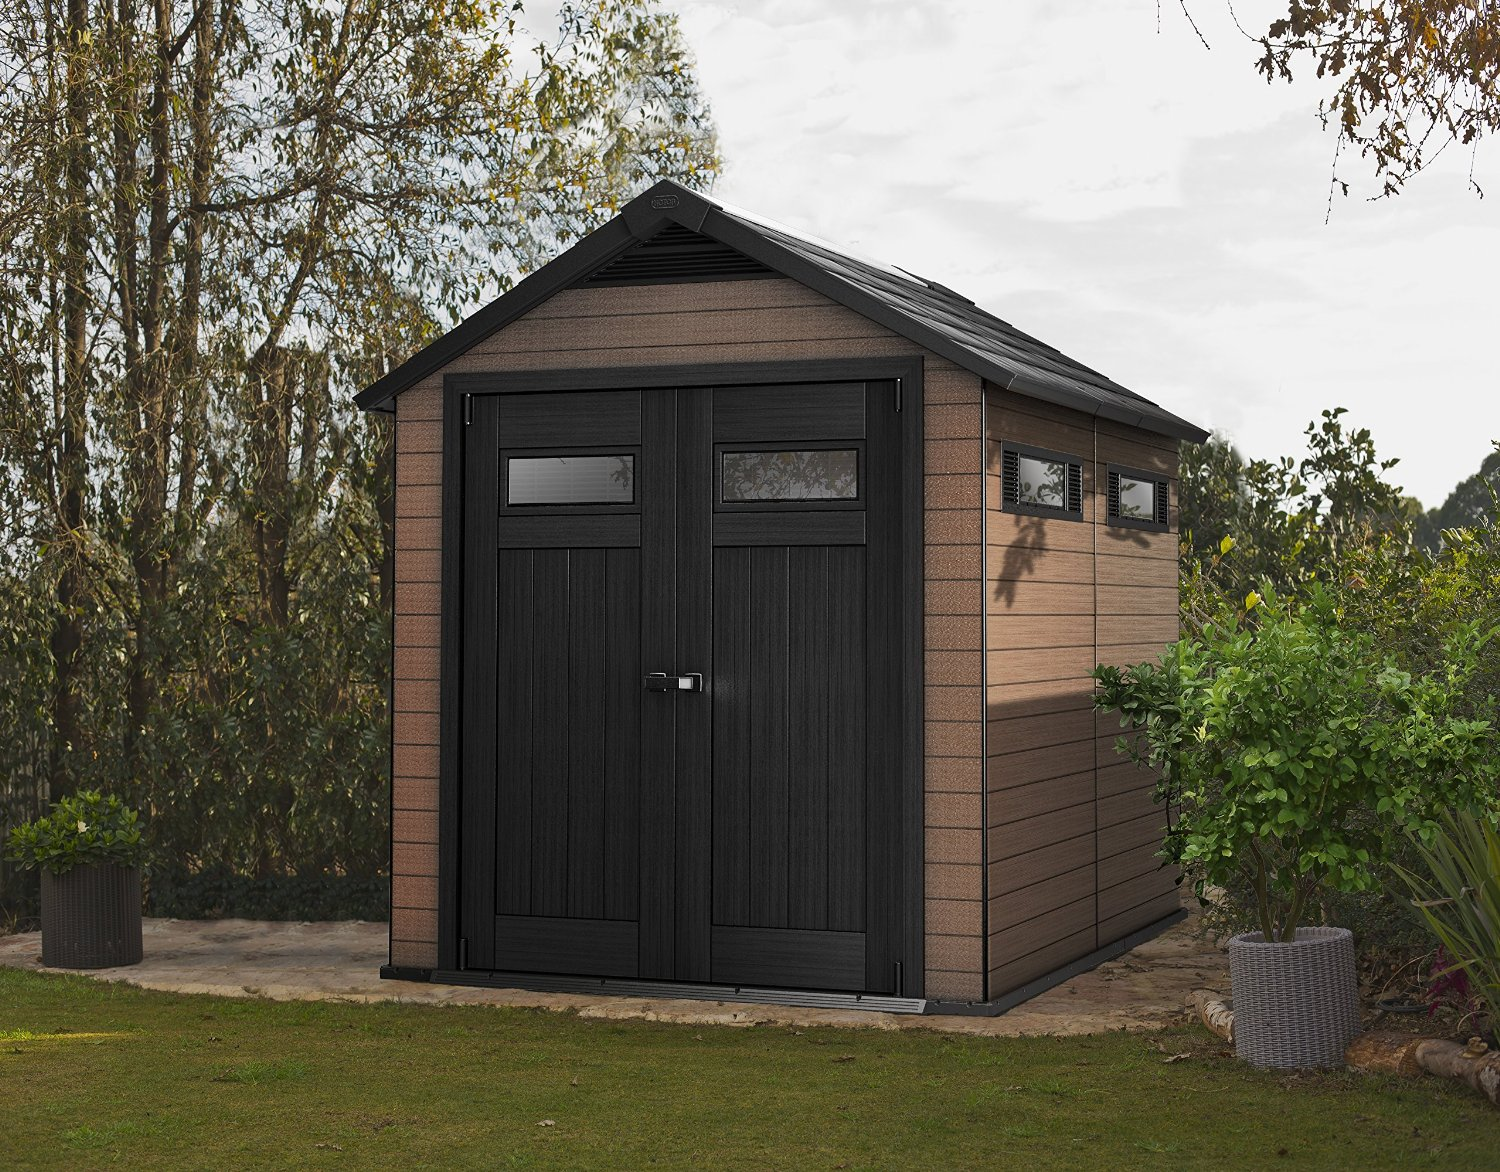 Keter Fusion 759 Garden Shed Weather Resistant Sheds